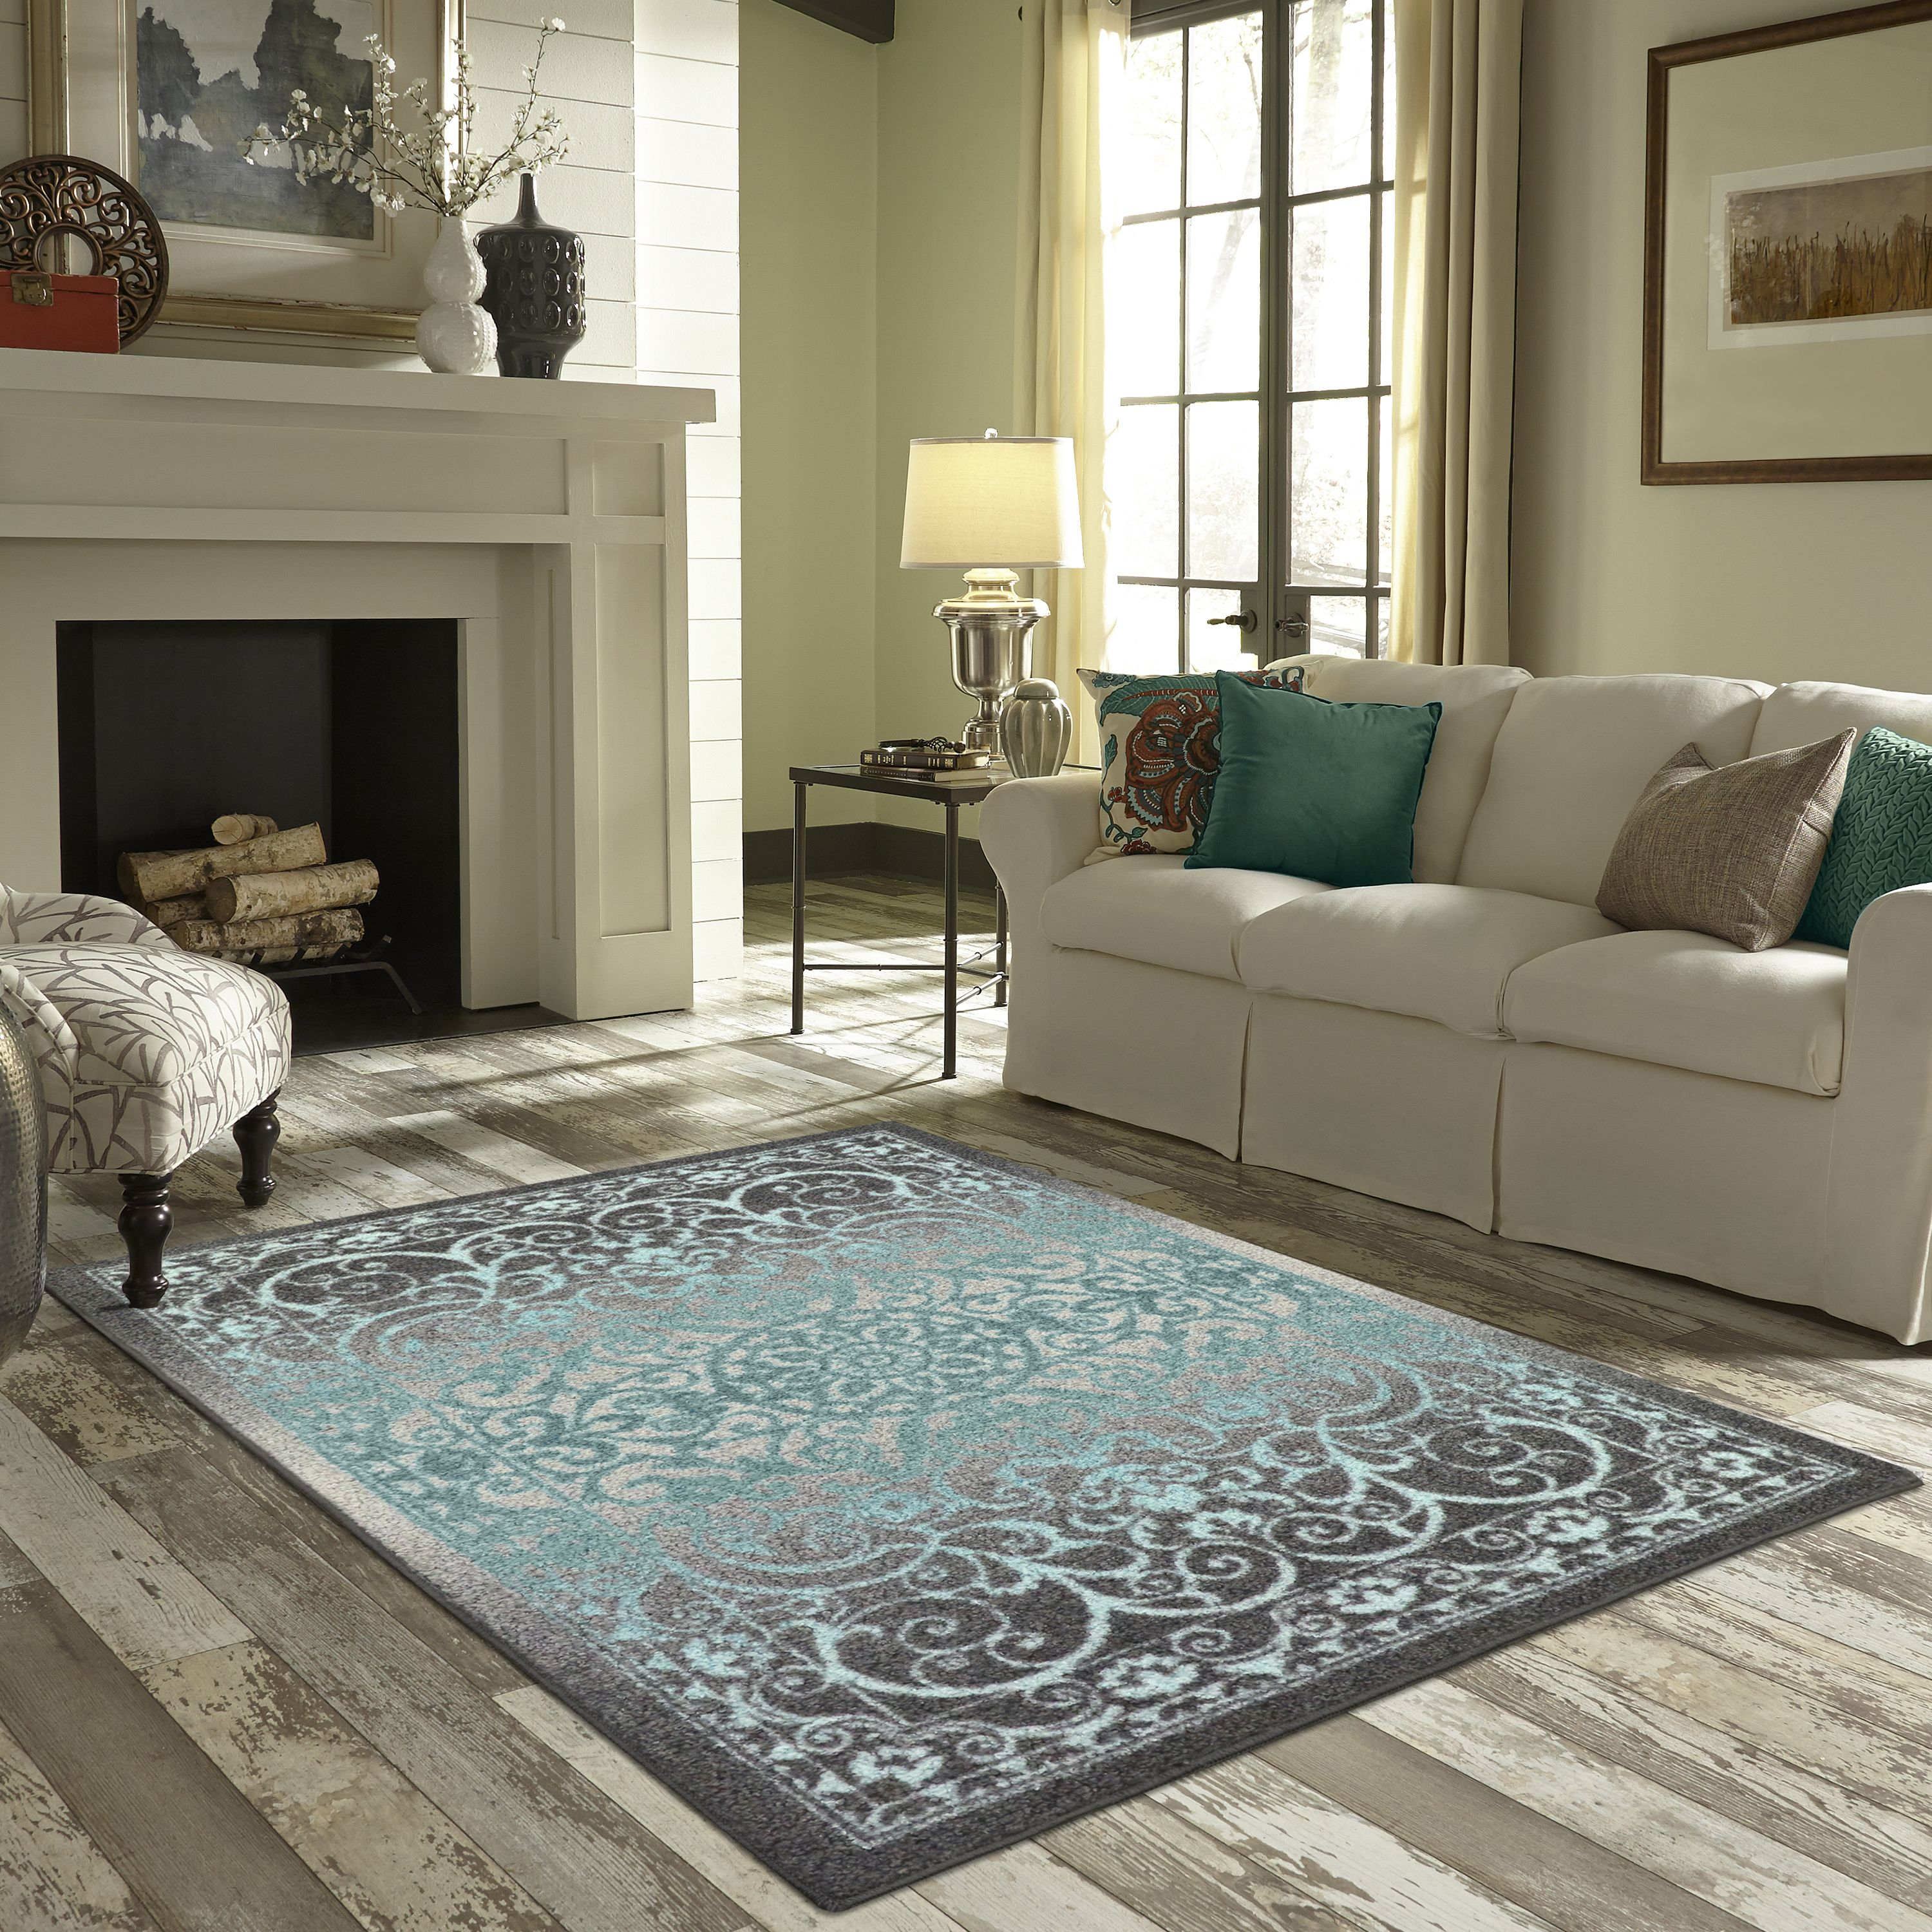 Mainstays india medallion textured print area rug and runner